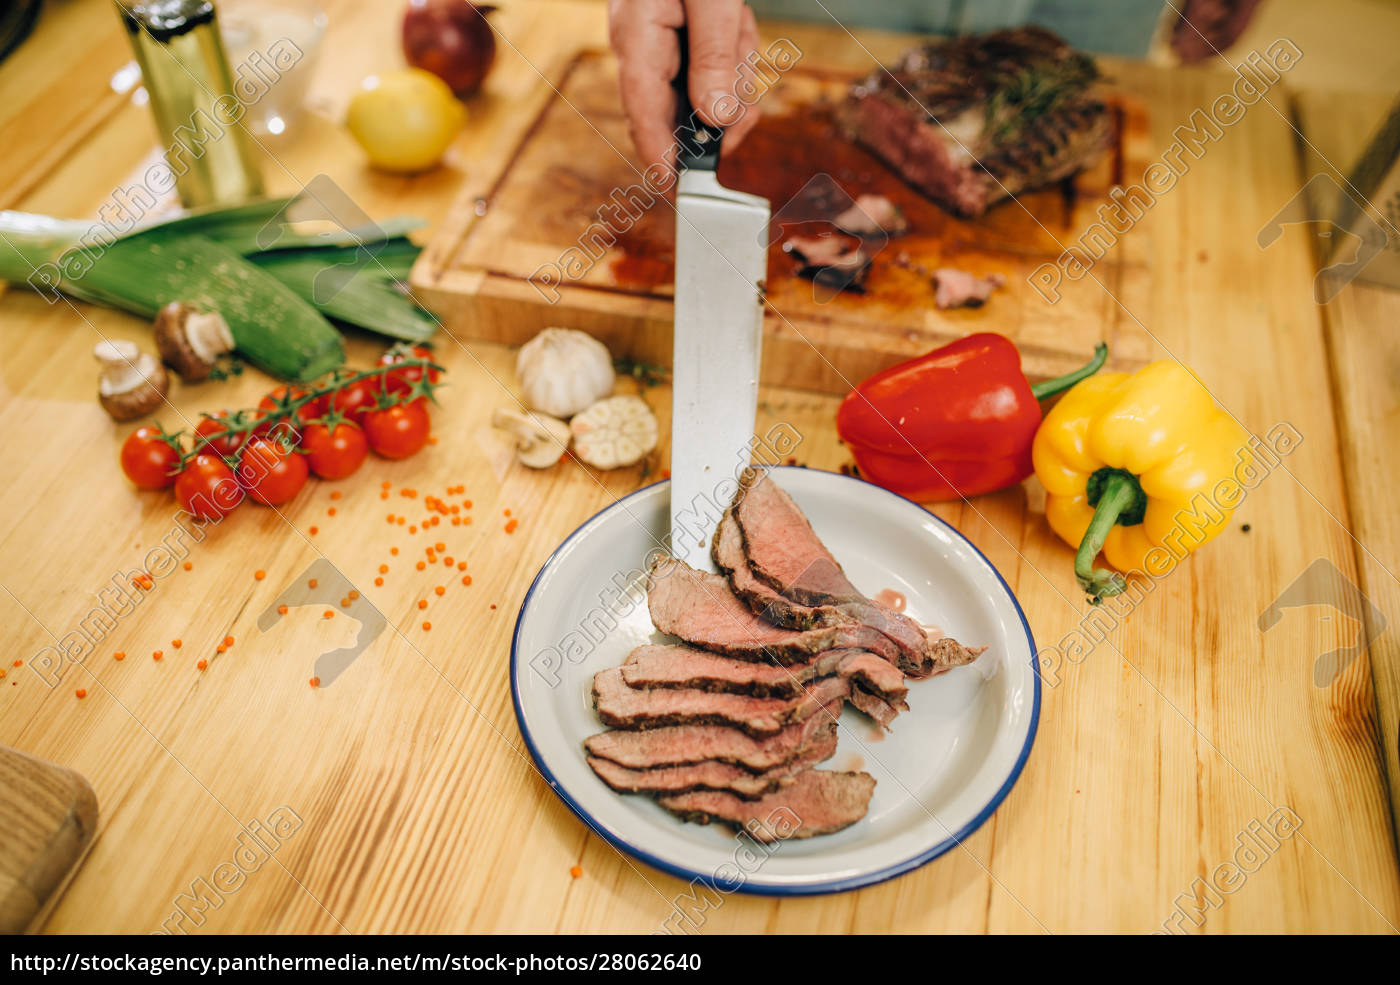 chef, with, knife, puts, roasted, meat - 28062640